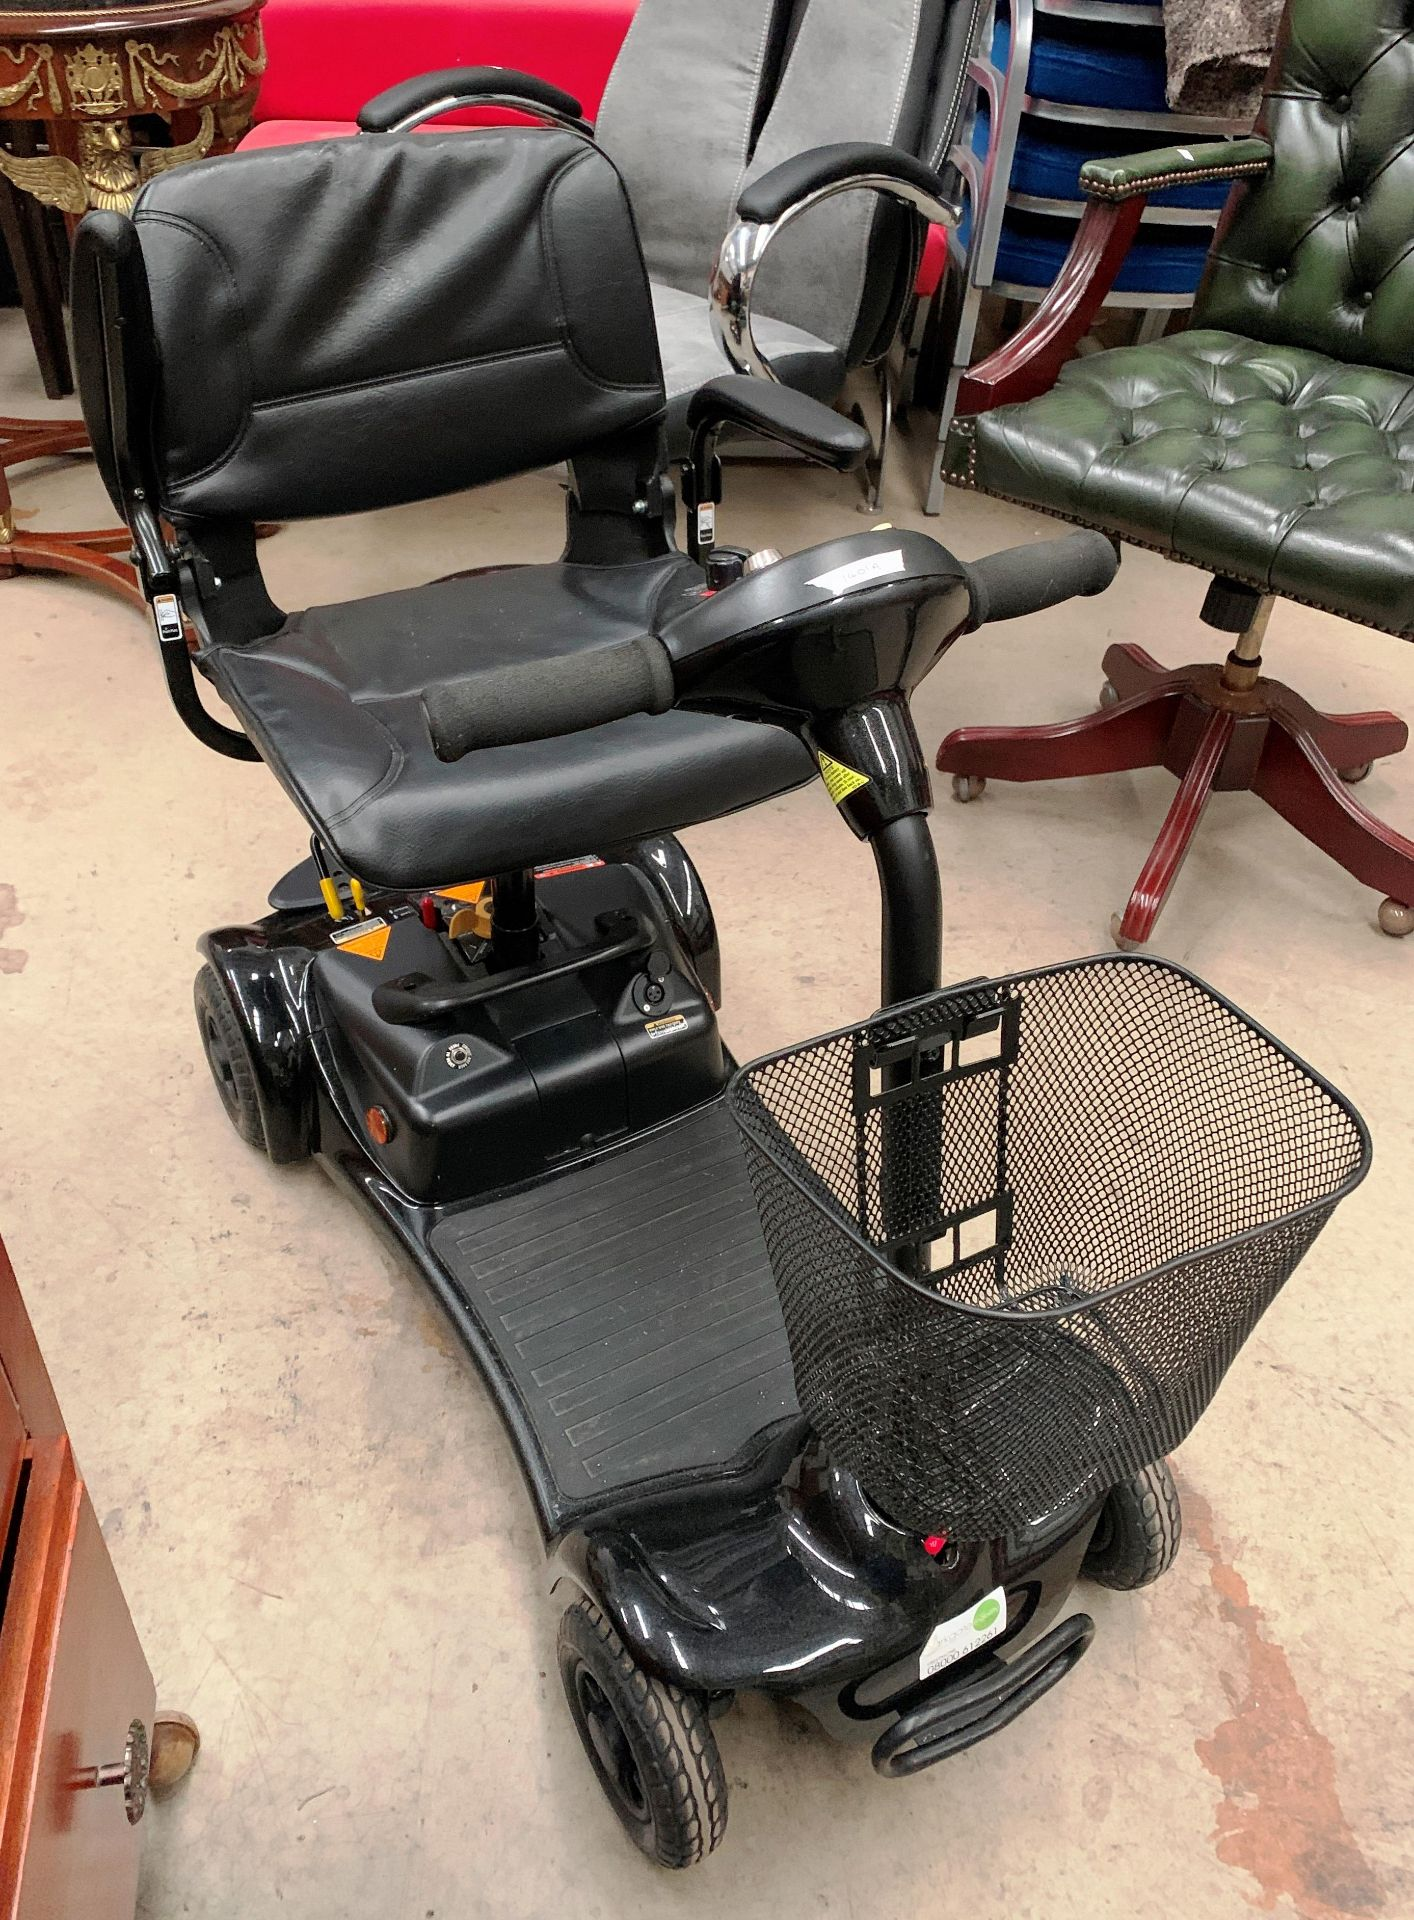 An Electric Mobility Euro Ltd Ultralite 480 mobility scooter complete with keys, manual,